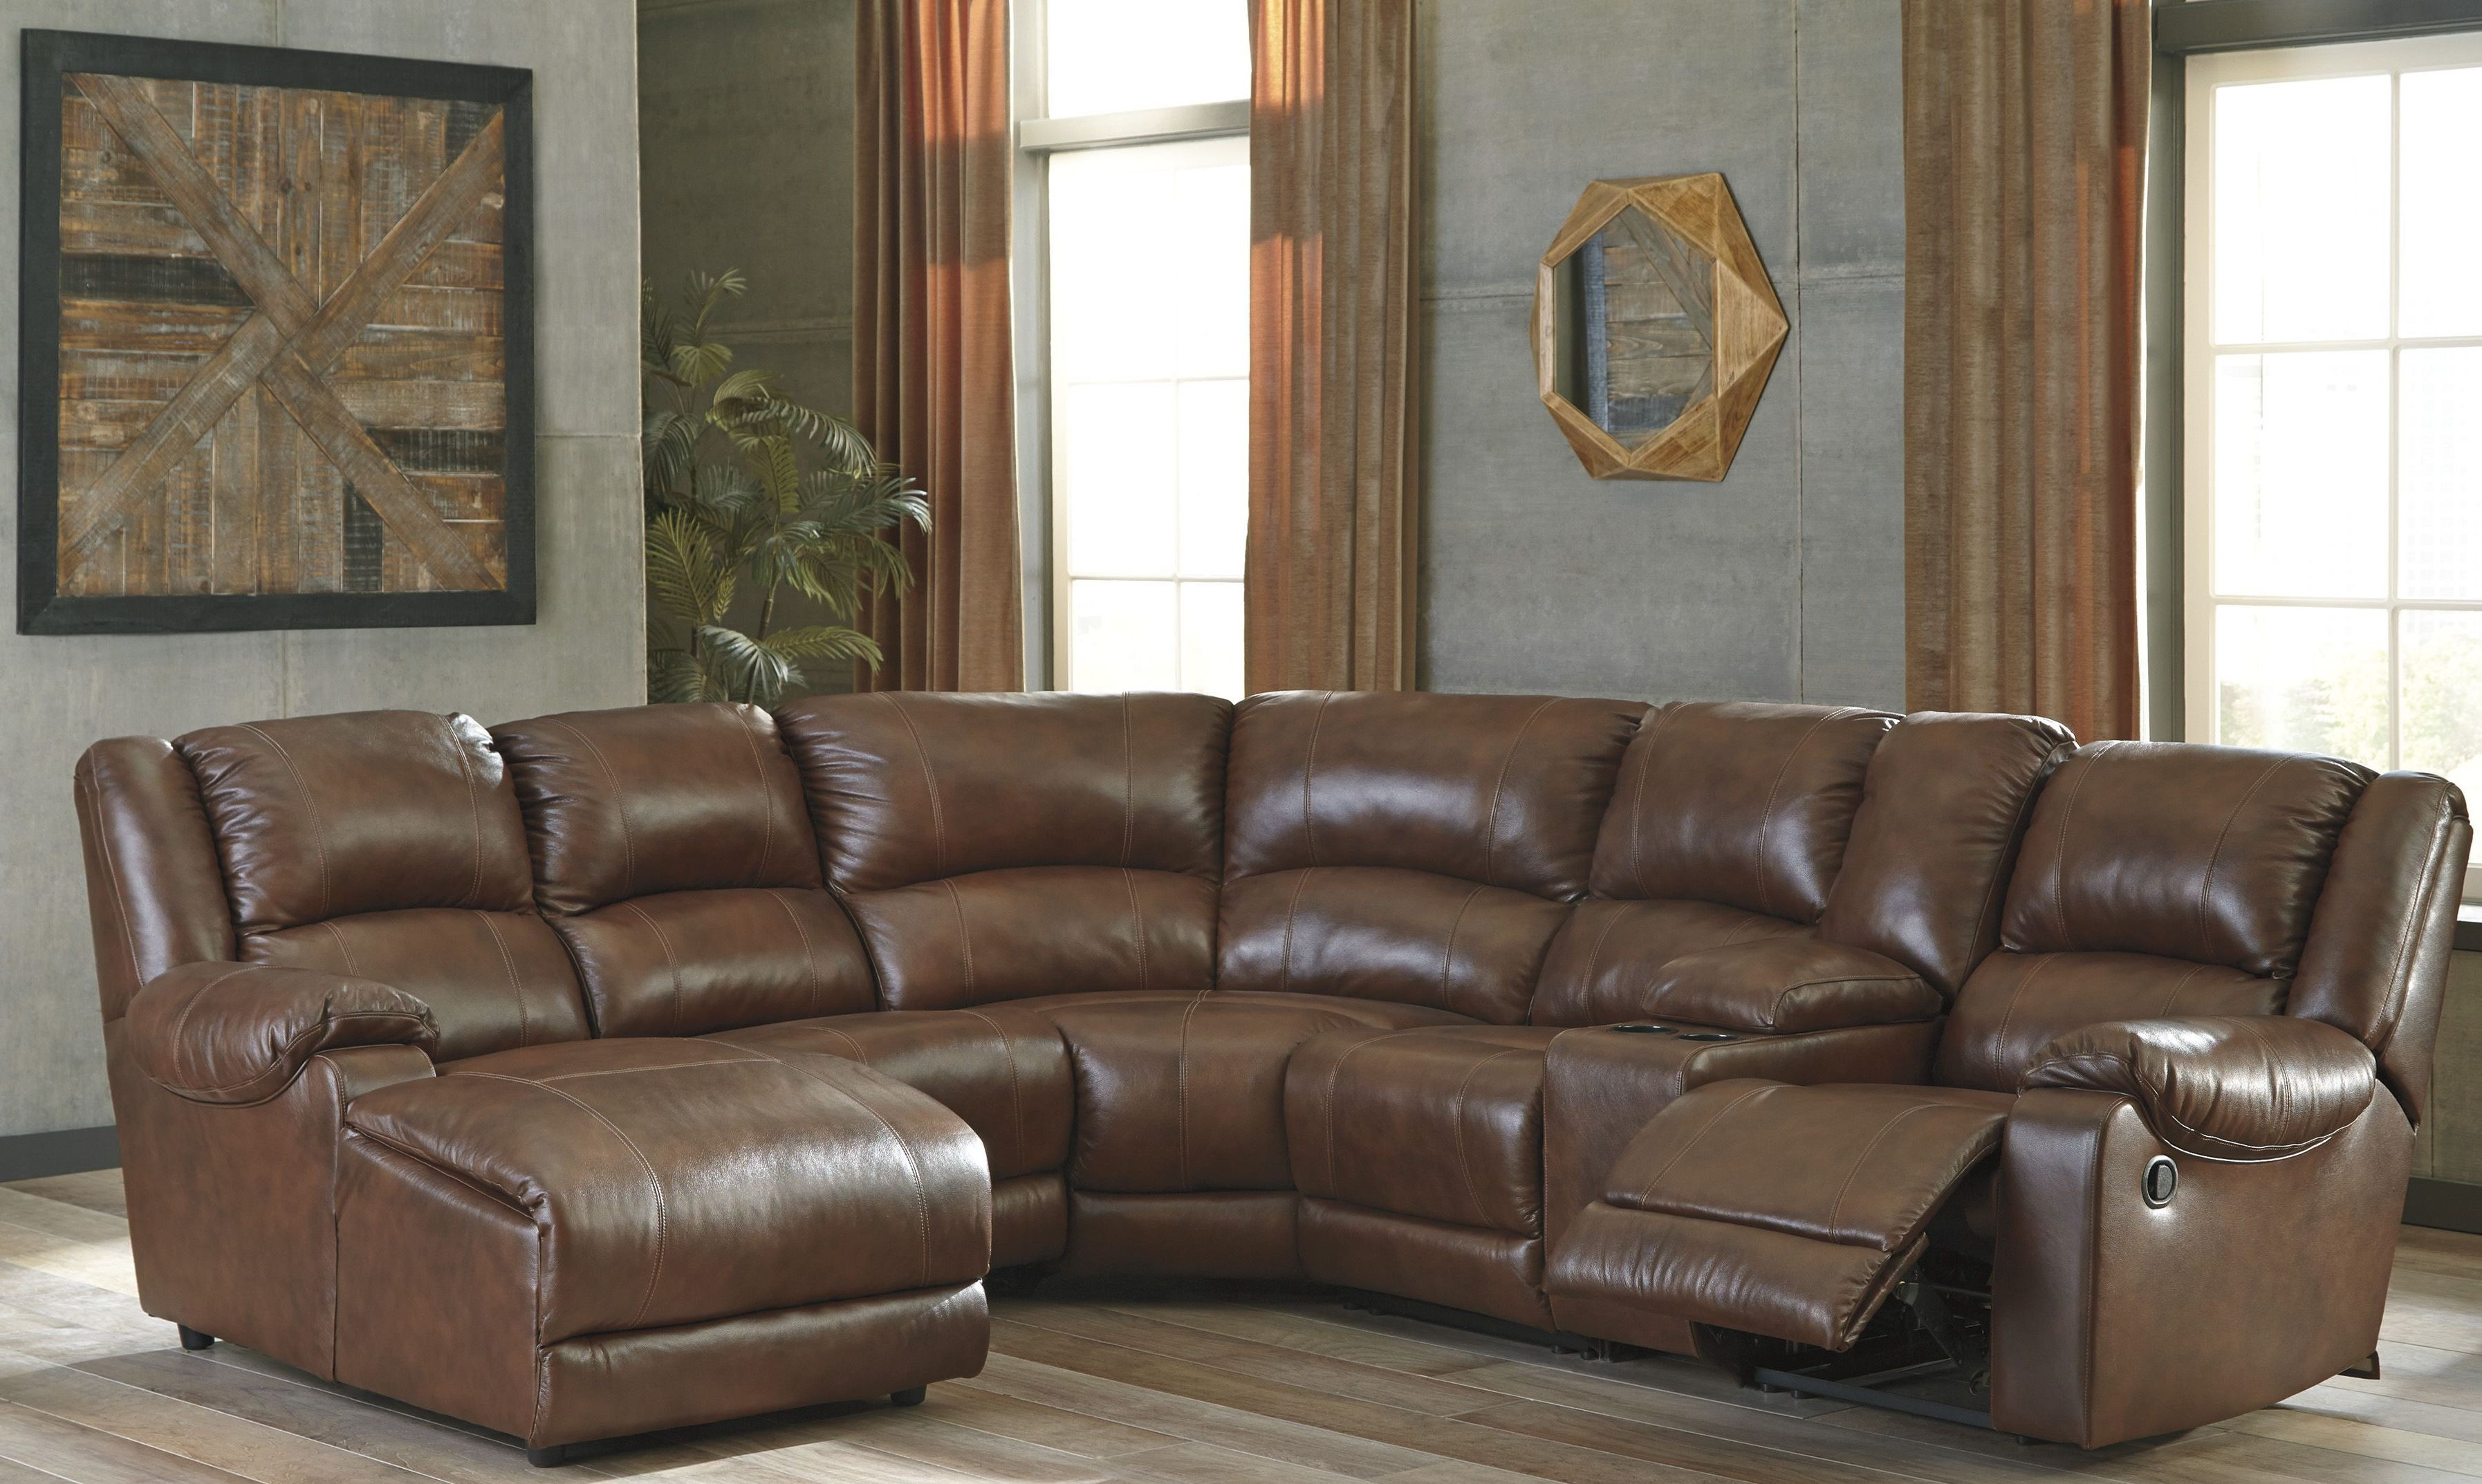 living products reclining larkspur sectional sectionals s frost piece room furniture kane leather